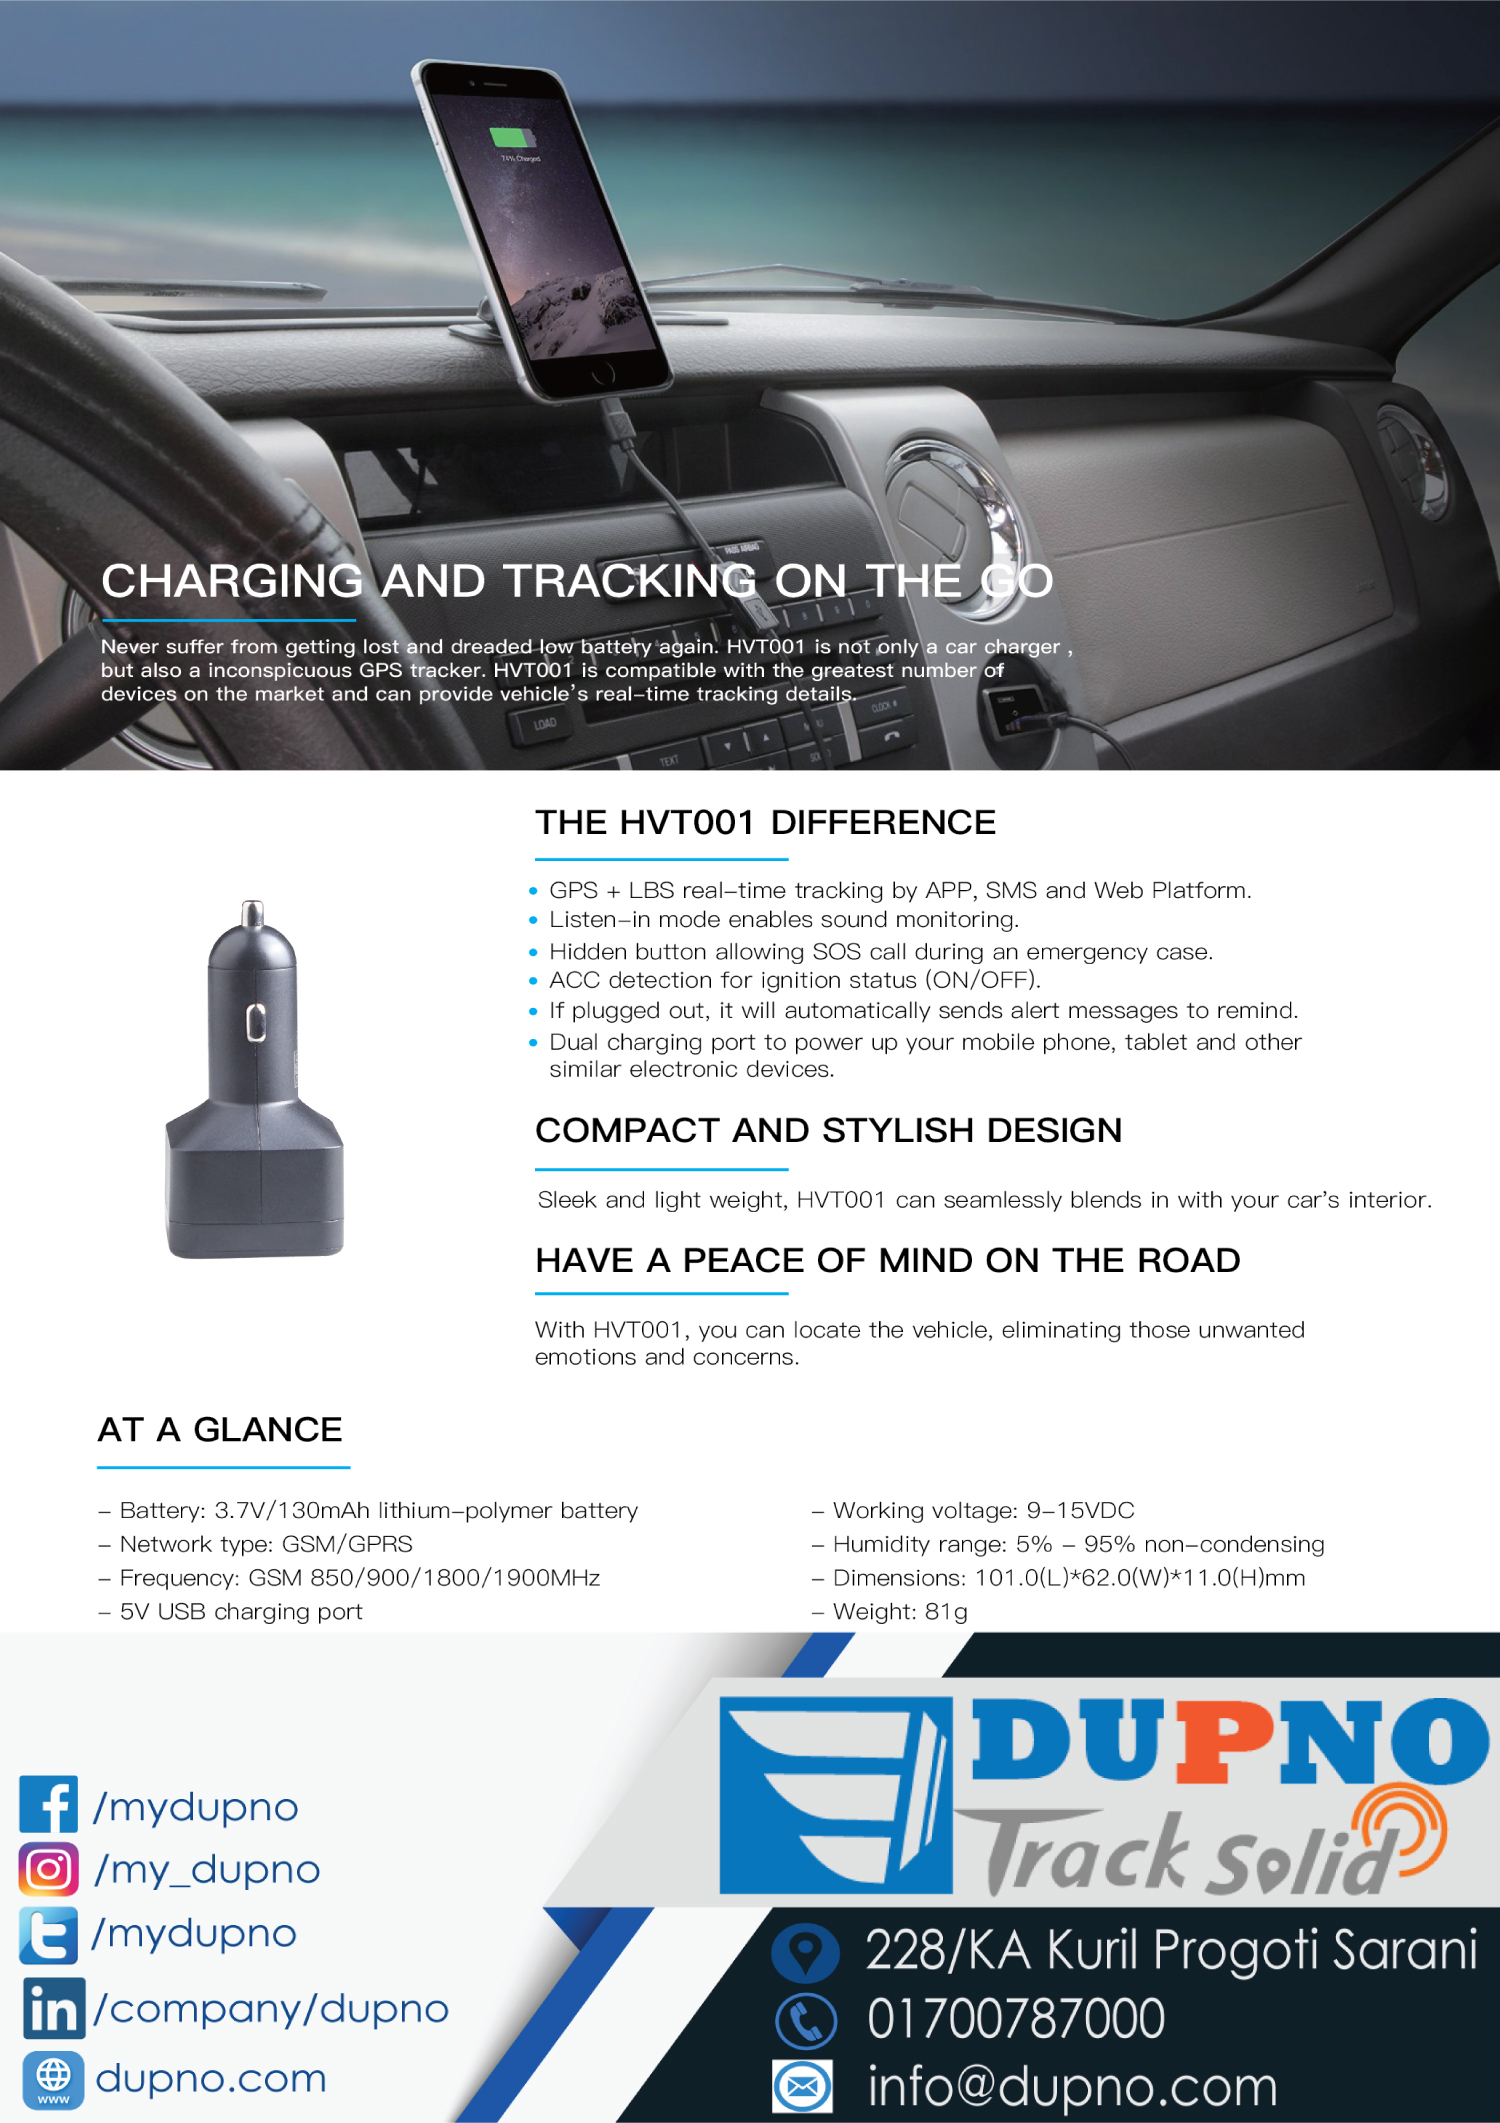 DUPNO best GPS tracking service in Bangladesh with latest and advanced IoT Devices and Platform with Web, iOS and Android Mobile Apps